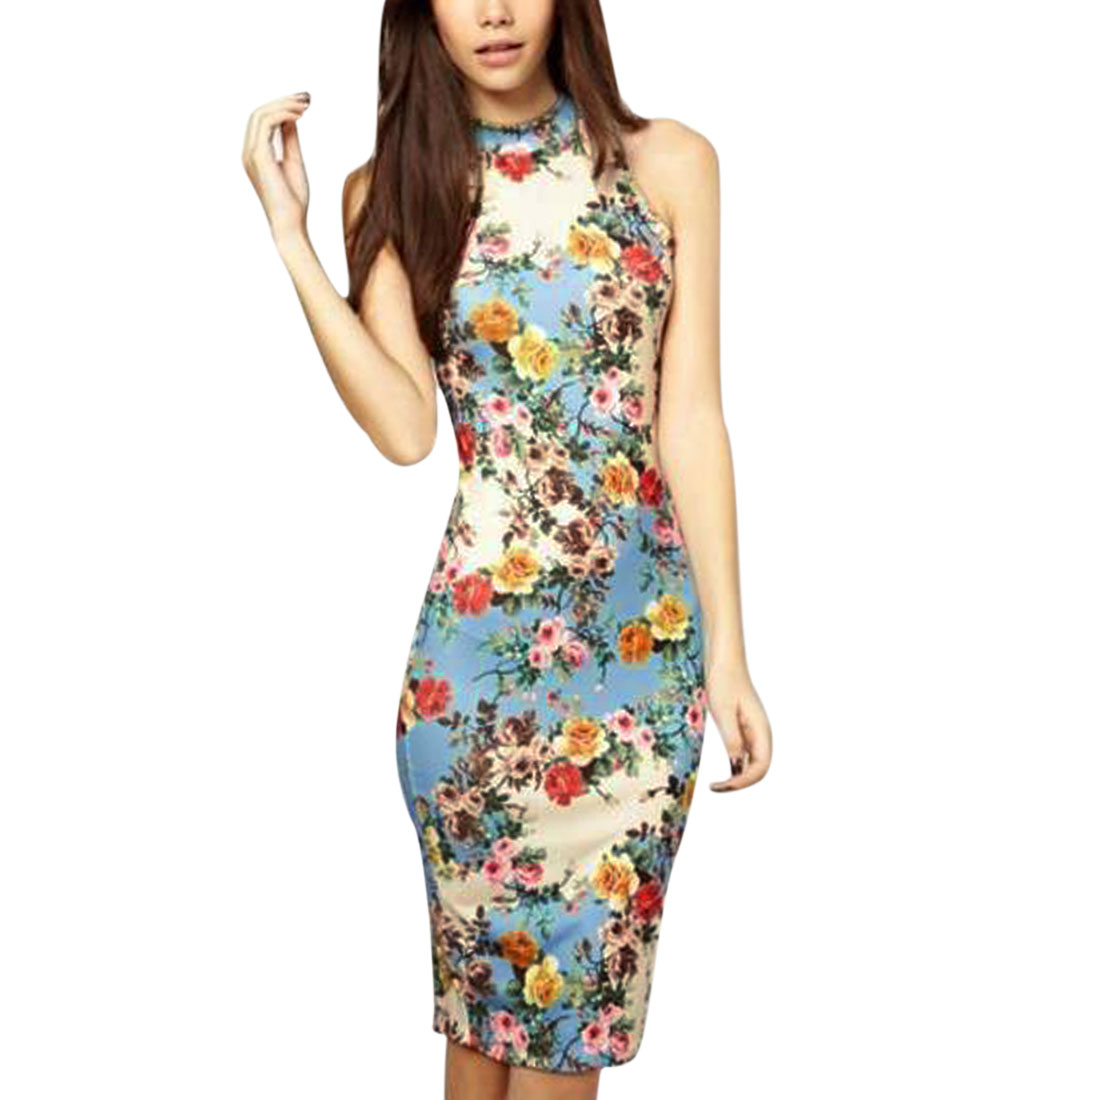 Women's Floral Prints Stand Collar Sleeveless Bodycon Wiggle Dress Blue (Size M / 8)